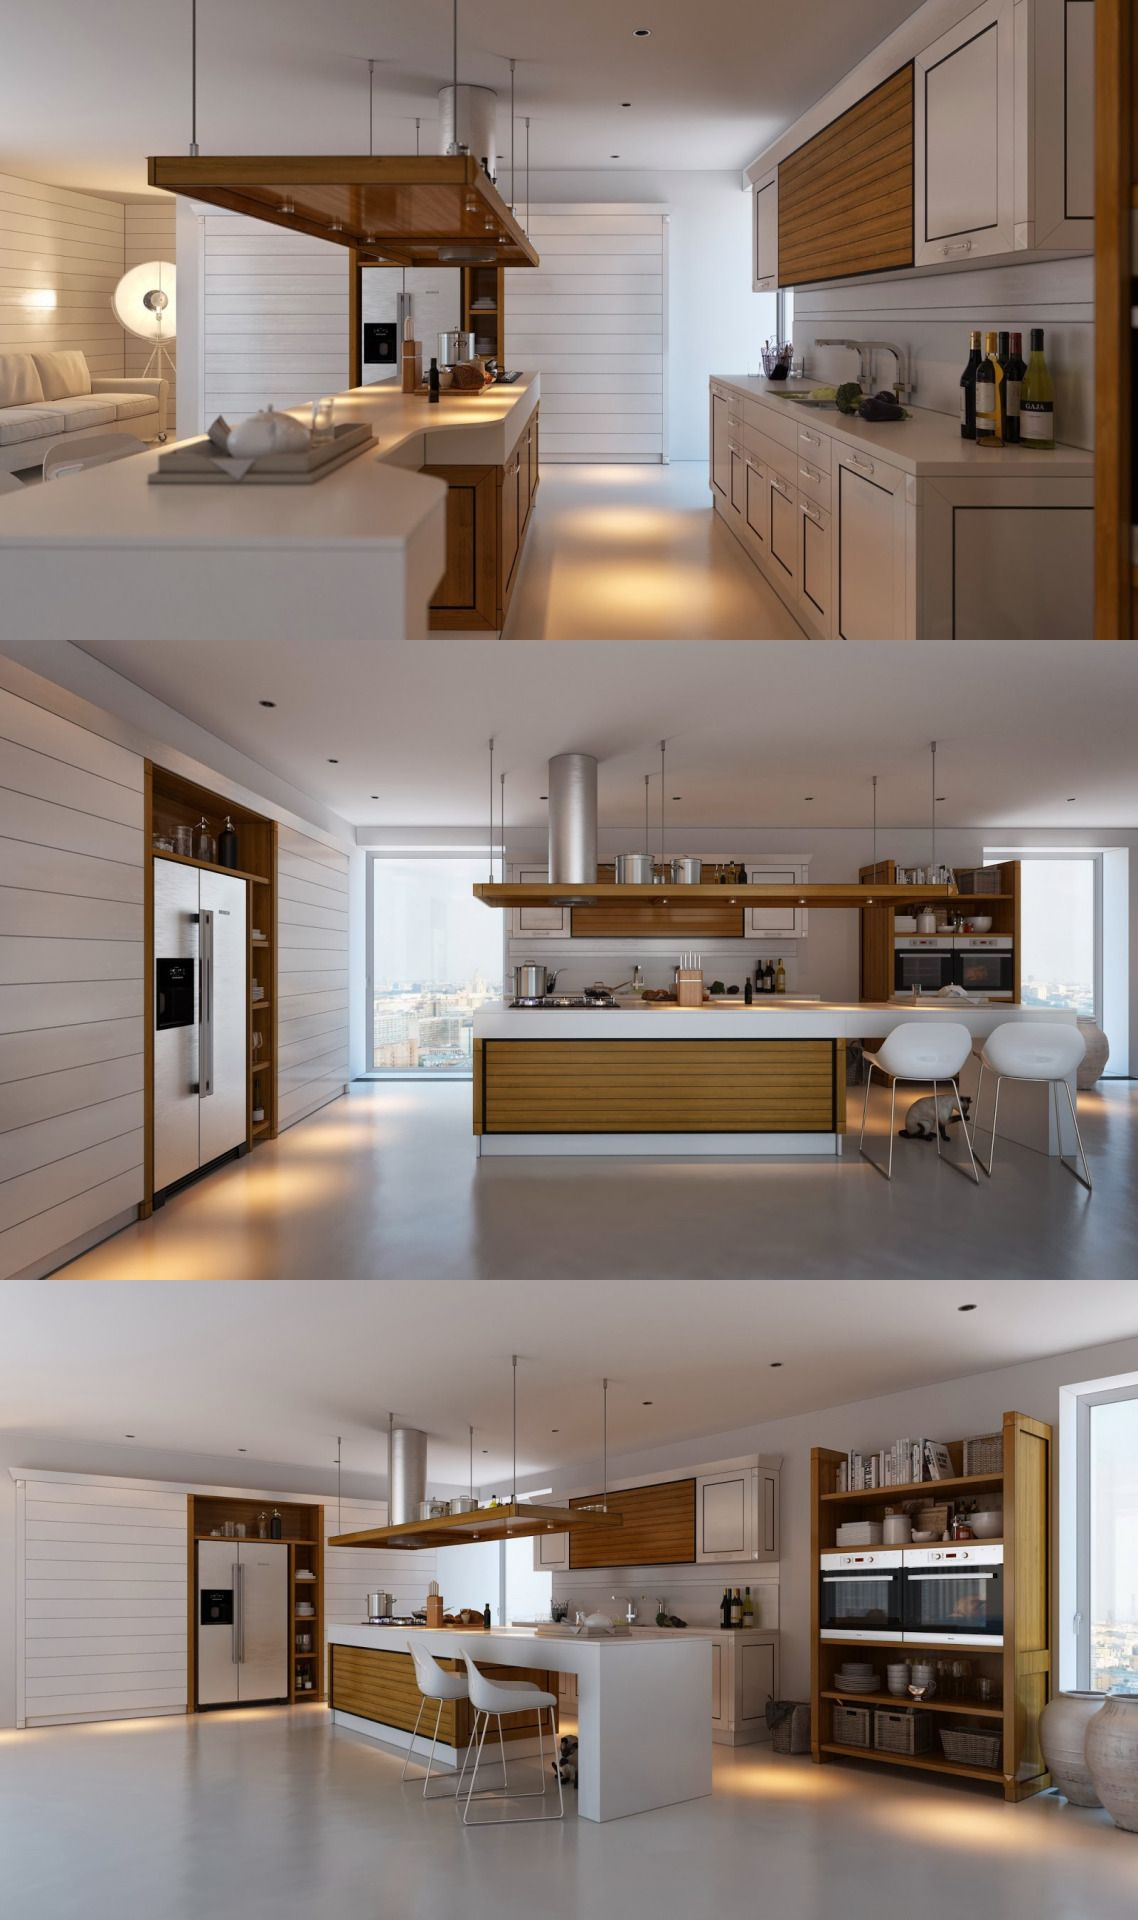 Designing A Kitchen Baltimore Remodeling Home Via Kitchens With Contrast Cocinas Pinterest